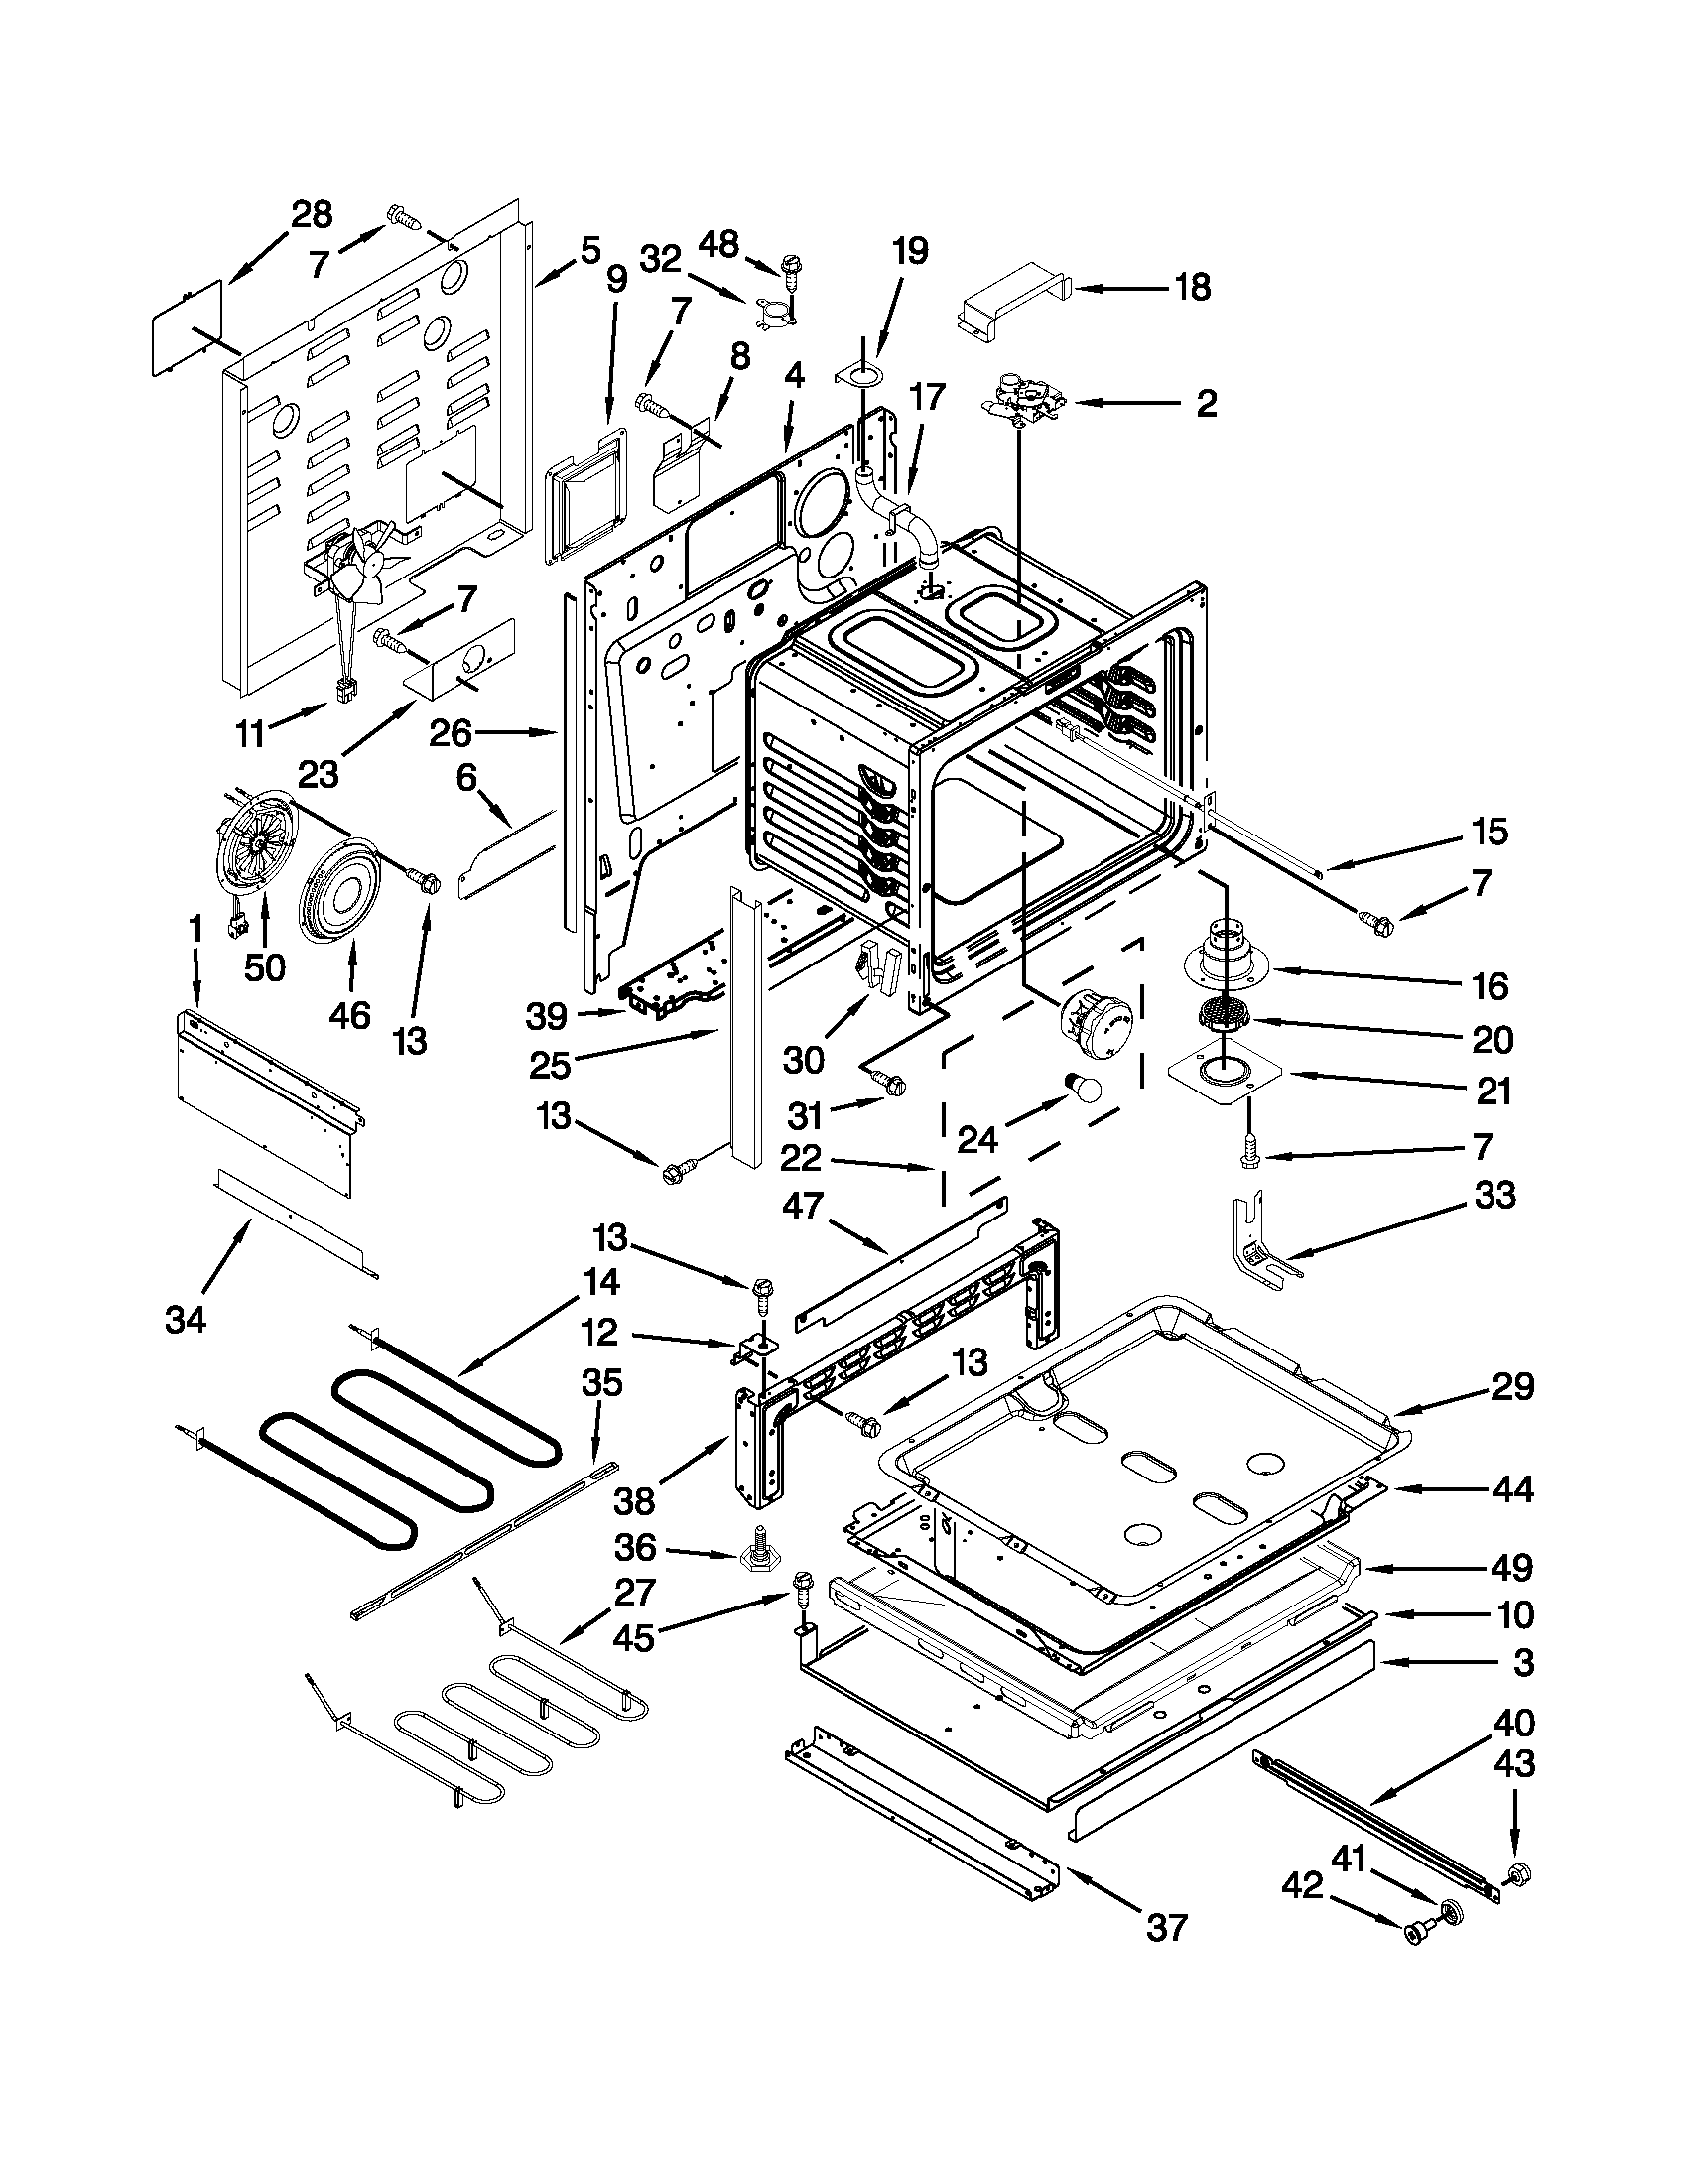 Whirlpool GY399LXUS03 chassis parts diagram